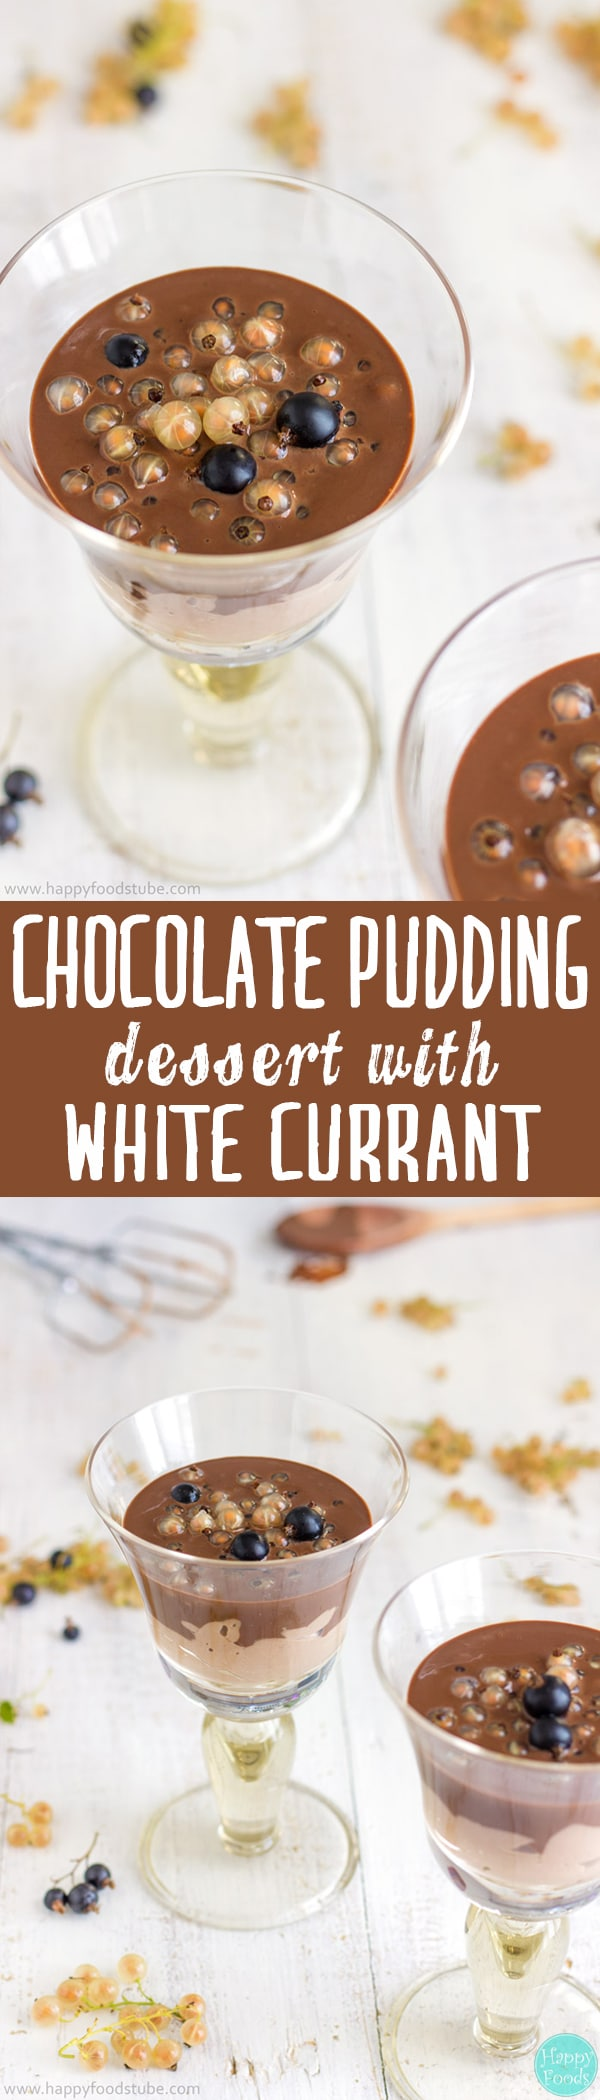 Chocolate Pudding Dessert with White Currant - A combination of rich dark chocolate pudding with chocolate mascarpone layer and topped with white currant berries! A pretty easy summer treat! | happyfoodstube.com